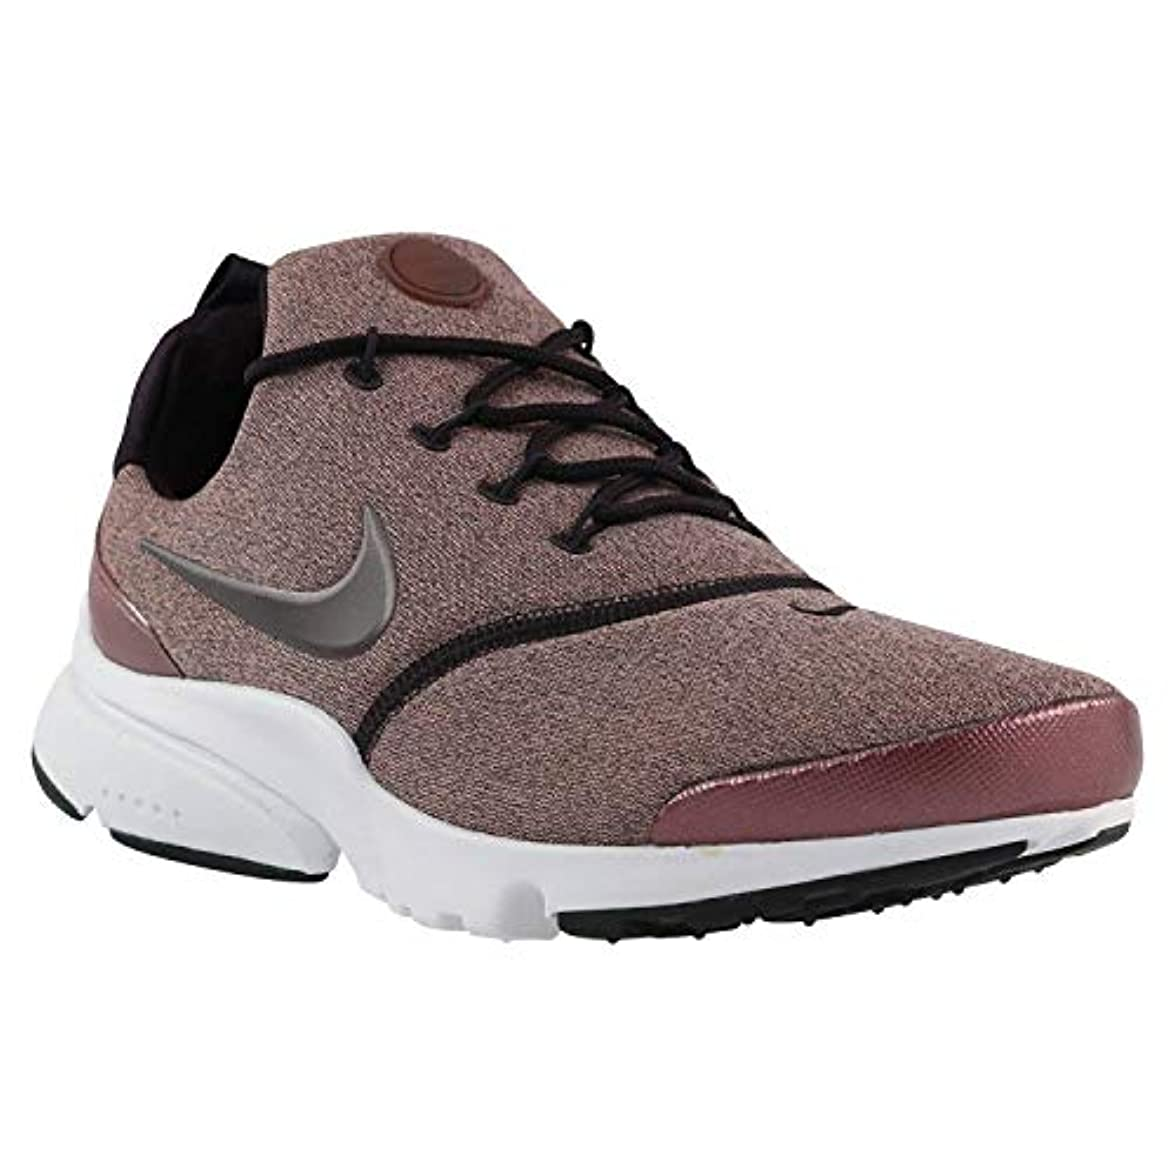 Nike Donne Presto Fly Se Running 910570 Sneakers Turnschuhe